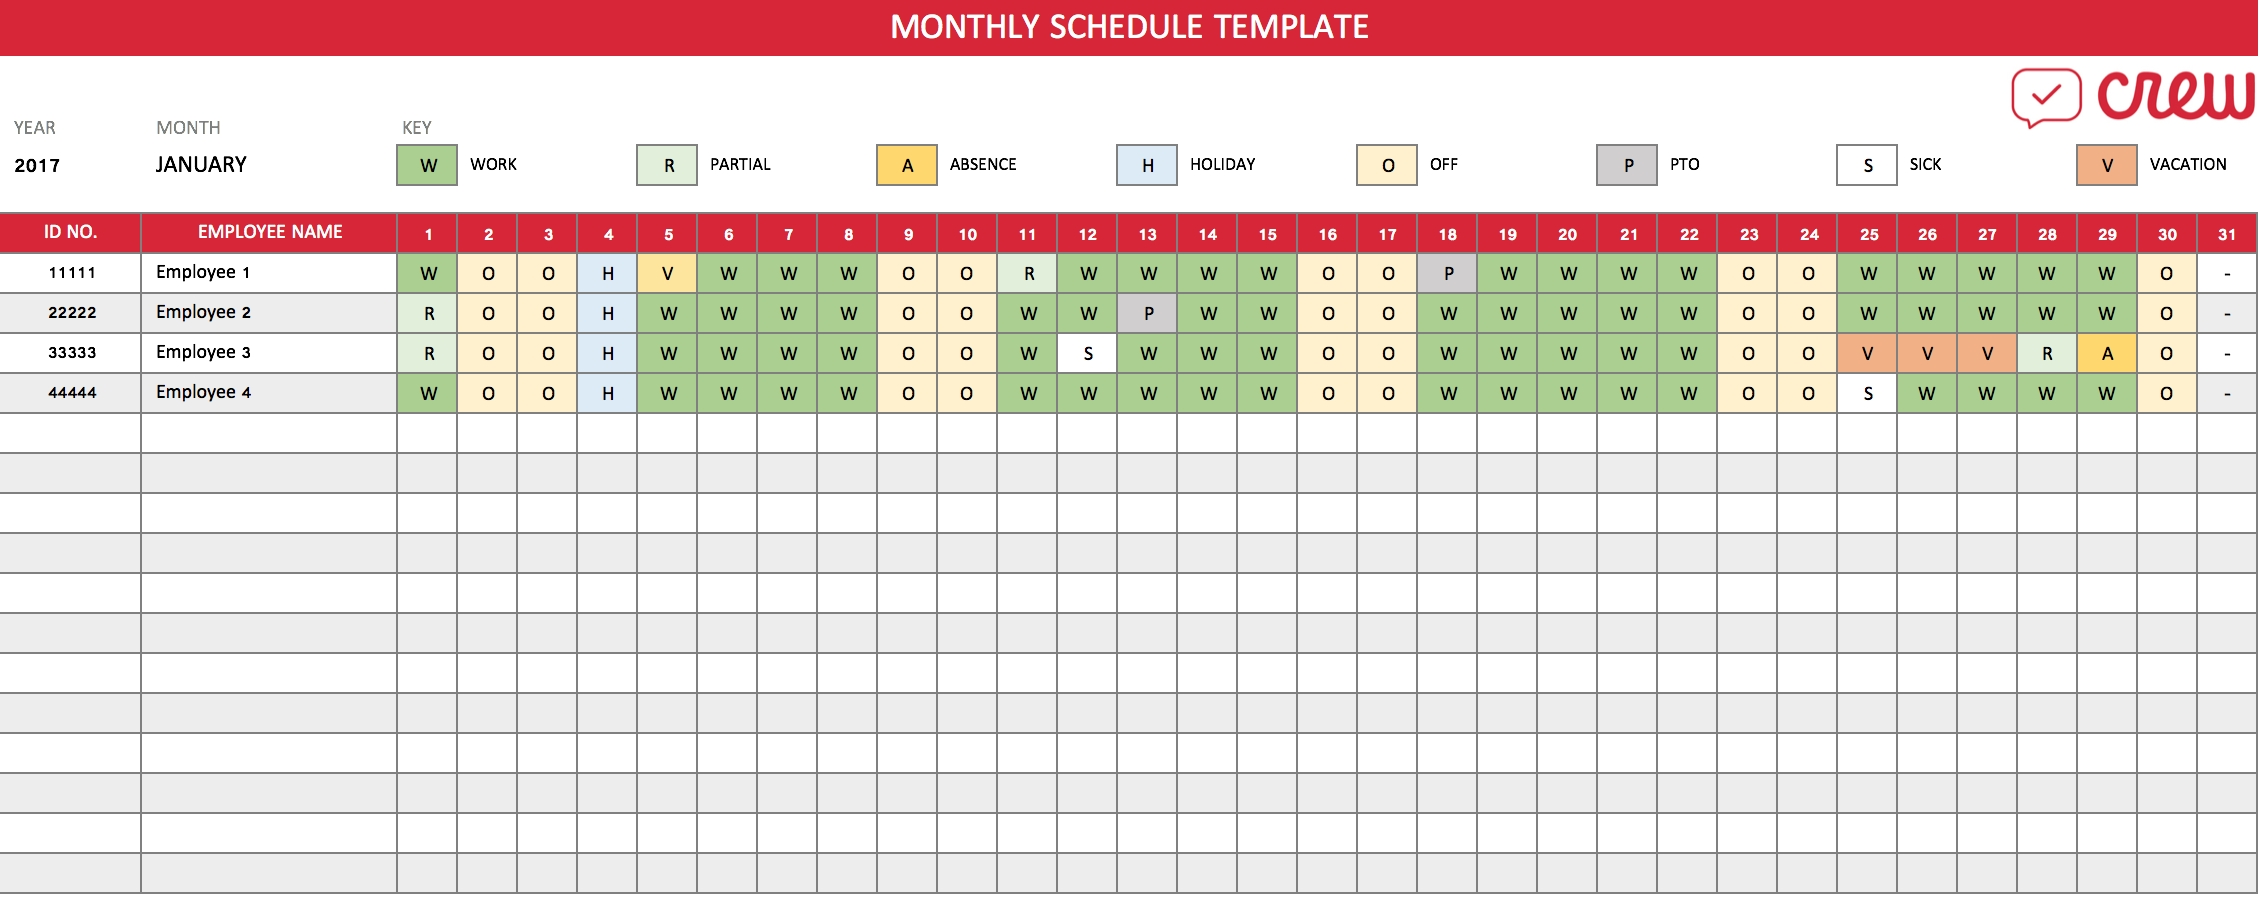 Free Monthly Work Schedule Template - Crew